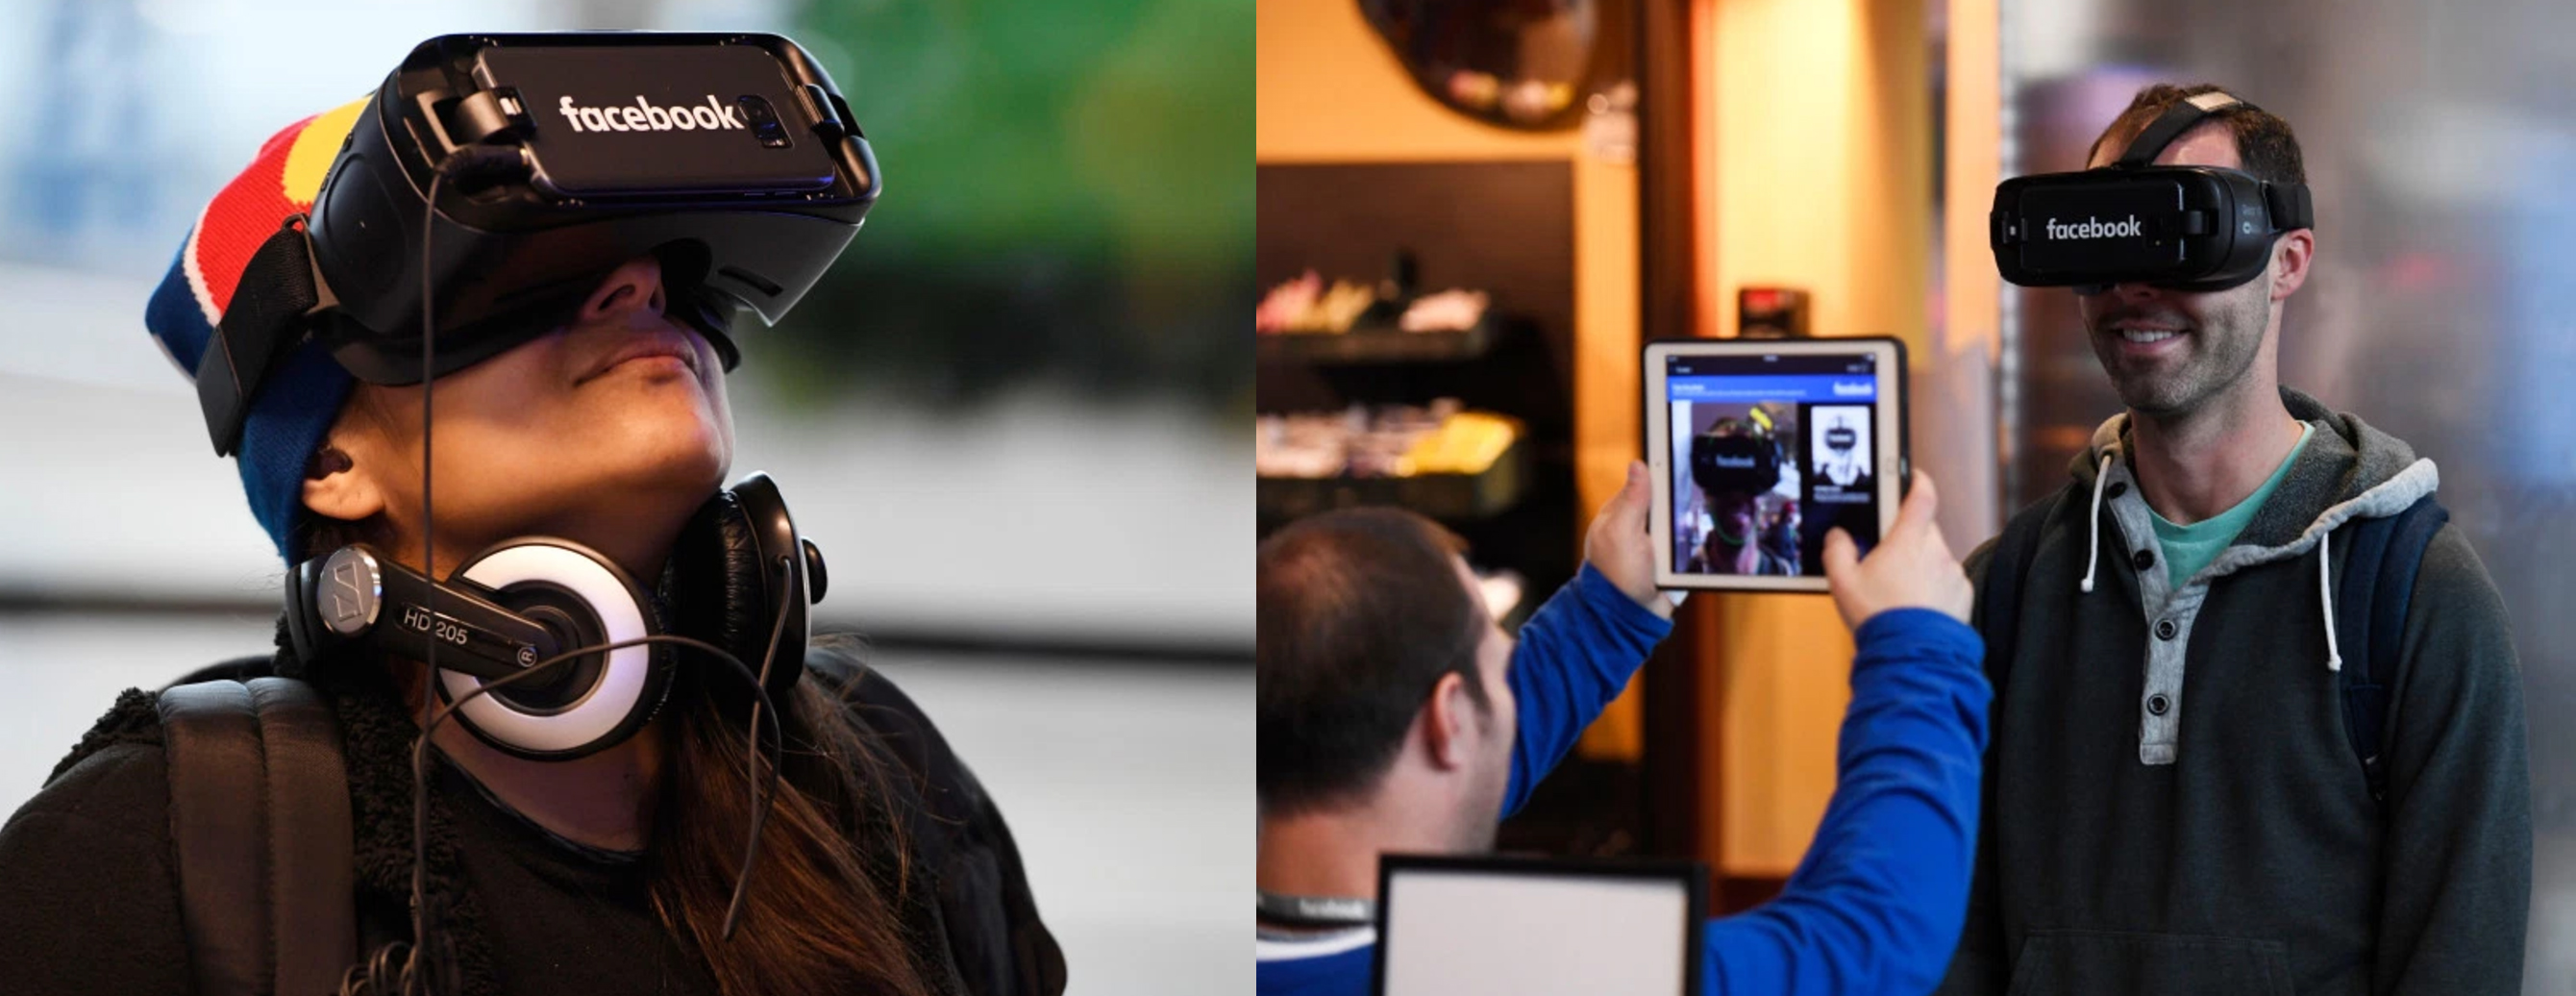 Facebook Hosts a Virtual Tour with Virtual Reality Headsets